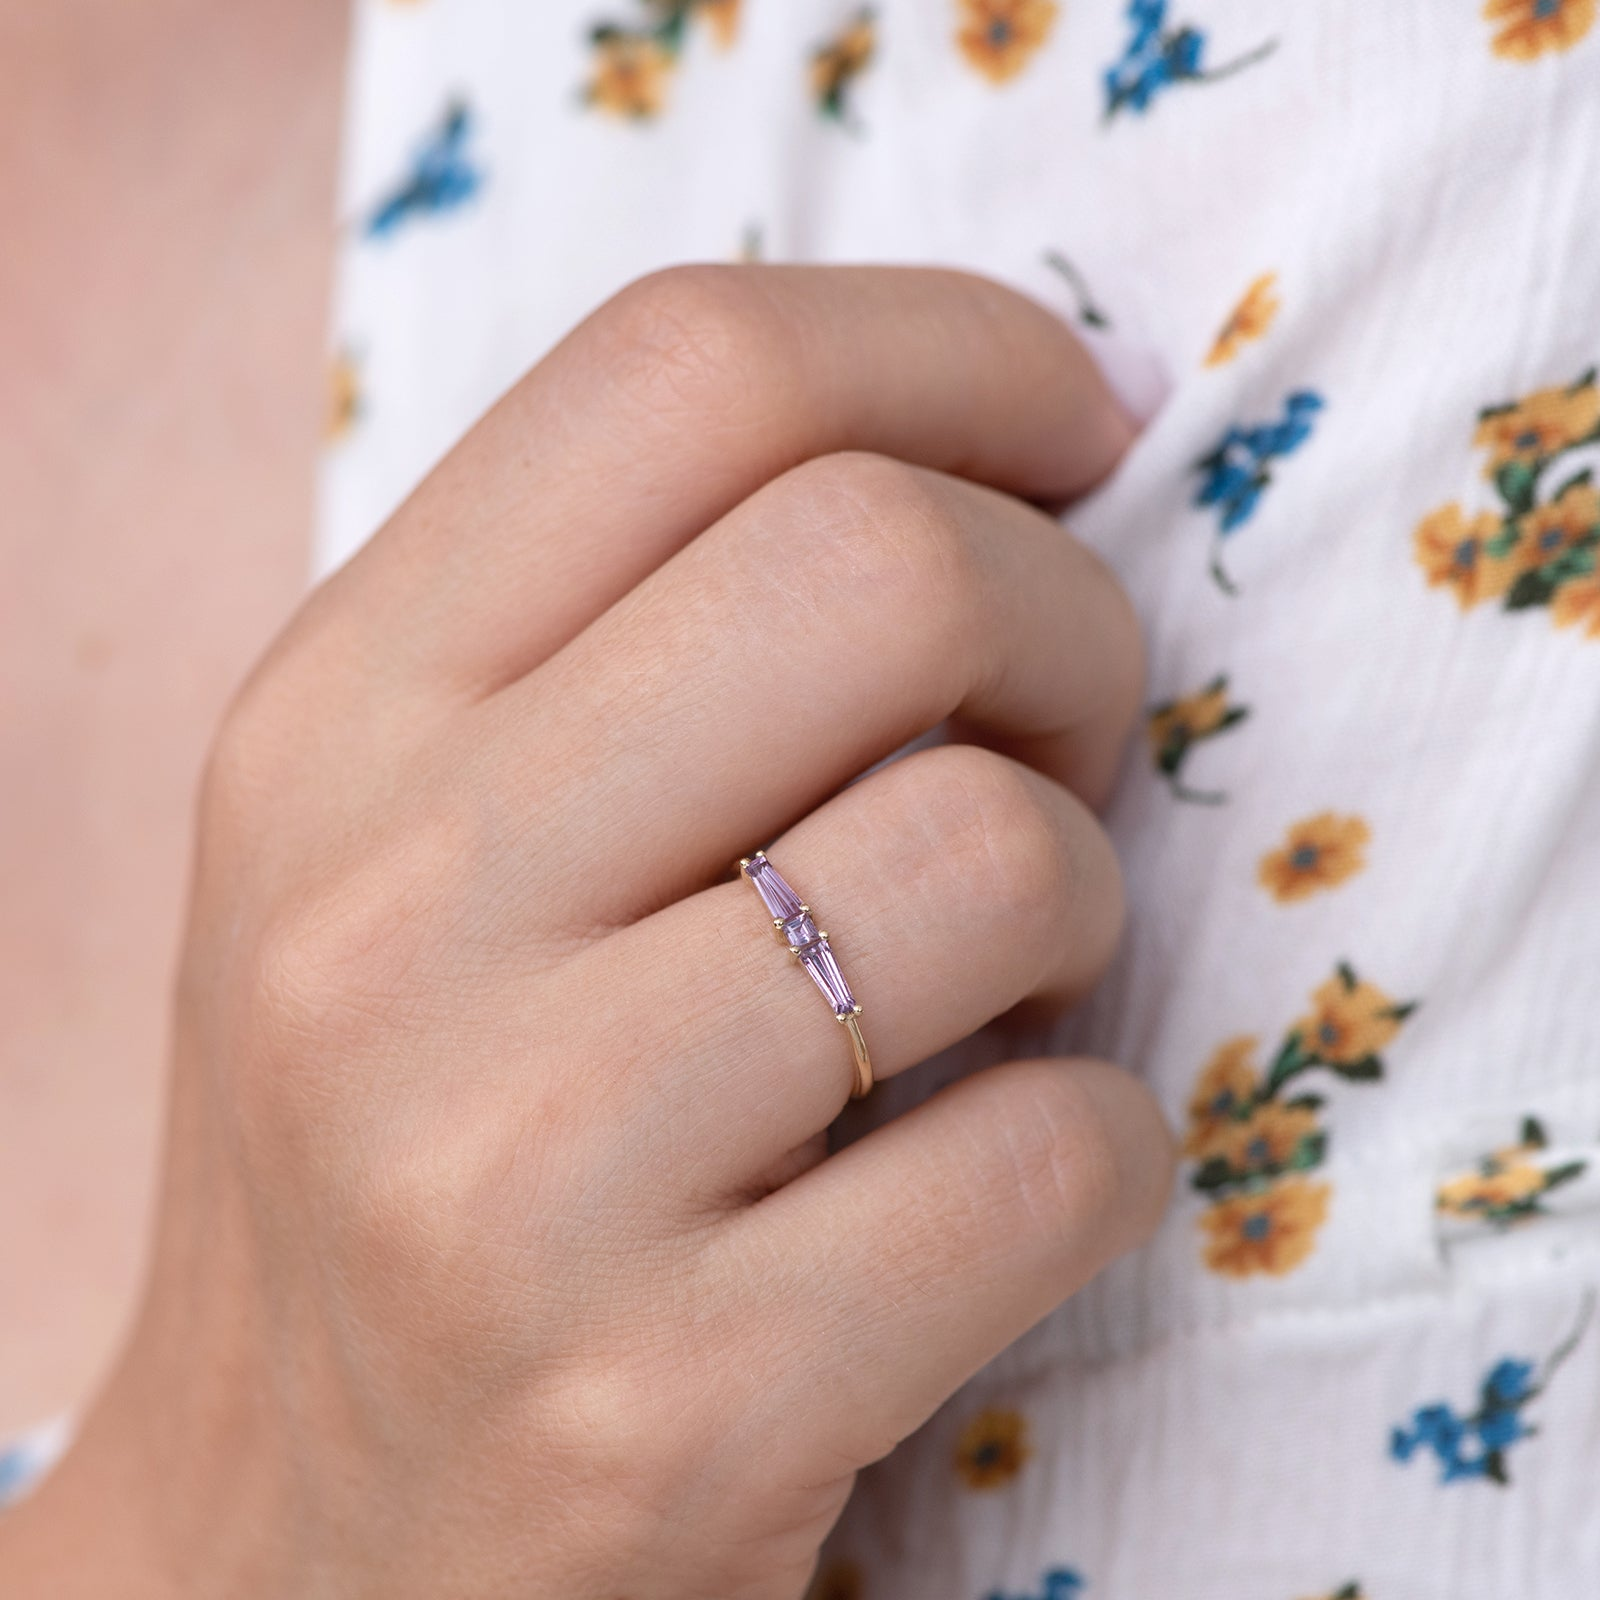 Lilac needle baguette ring3